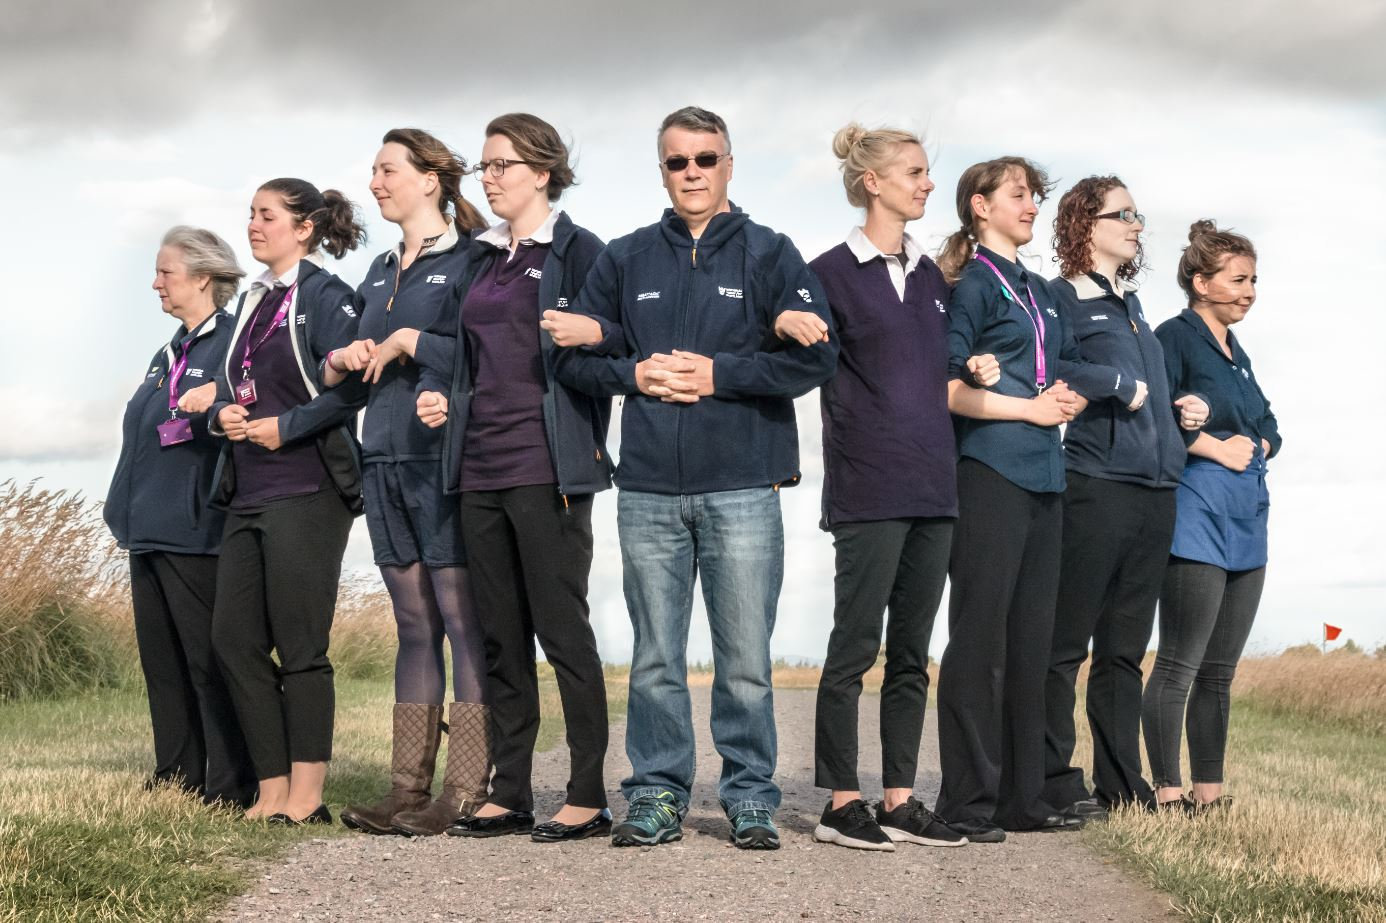 From left: Rosanna Jarvie, Astrid Joergensen, Catriona McIntosh, Emily Dueholm, Tim Belton, Sheena Huber, Holly Whitfield, Debbie Reid and Emma McIntosh